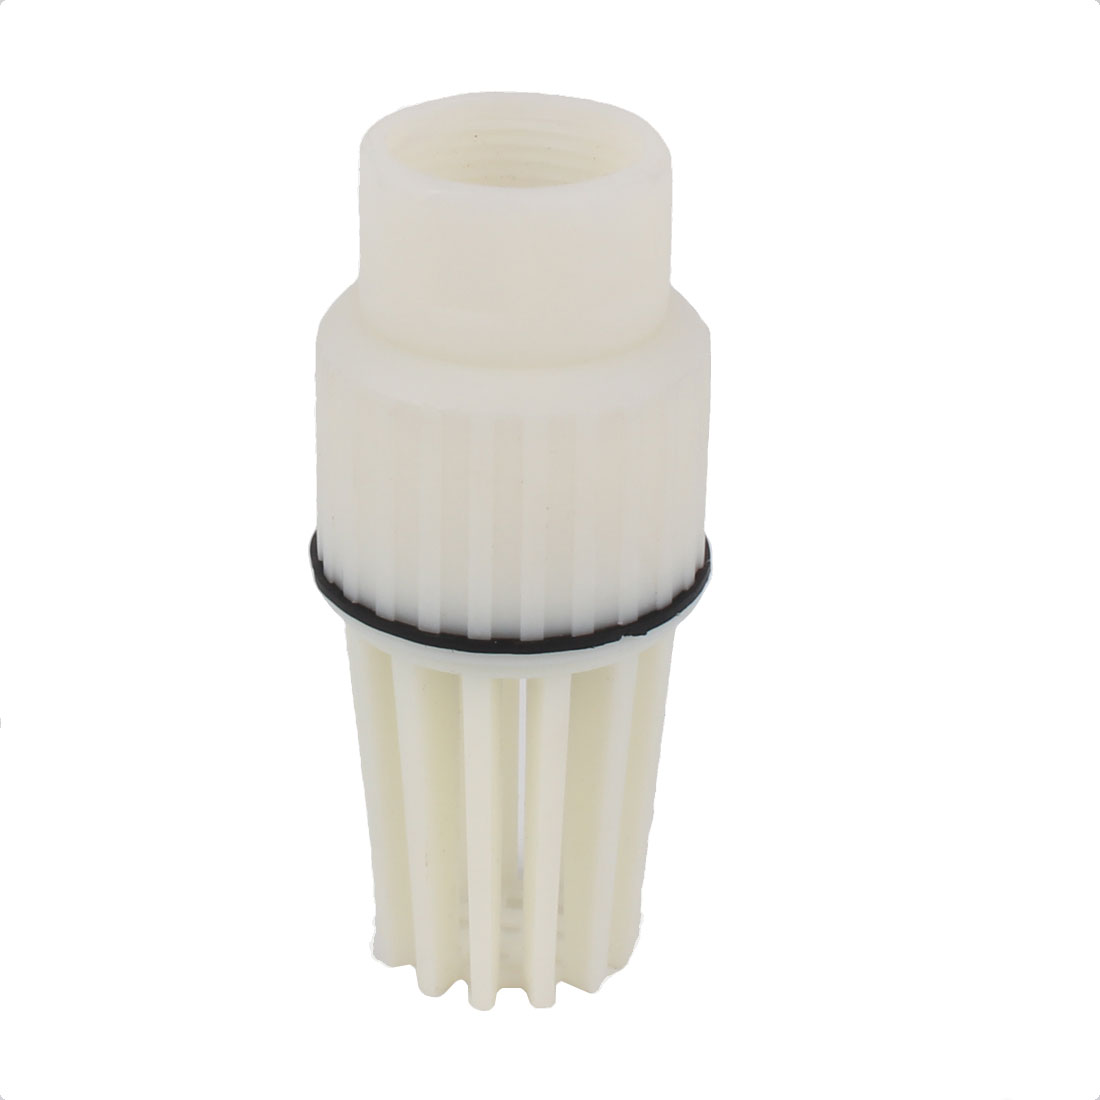 Fluid Machine Centrifugal Jet Pump 31mm Female Thread Plastic Foot Bottom Valve White